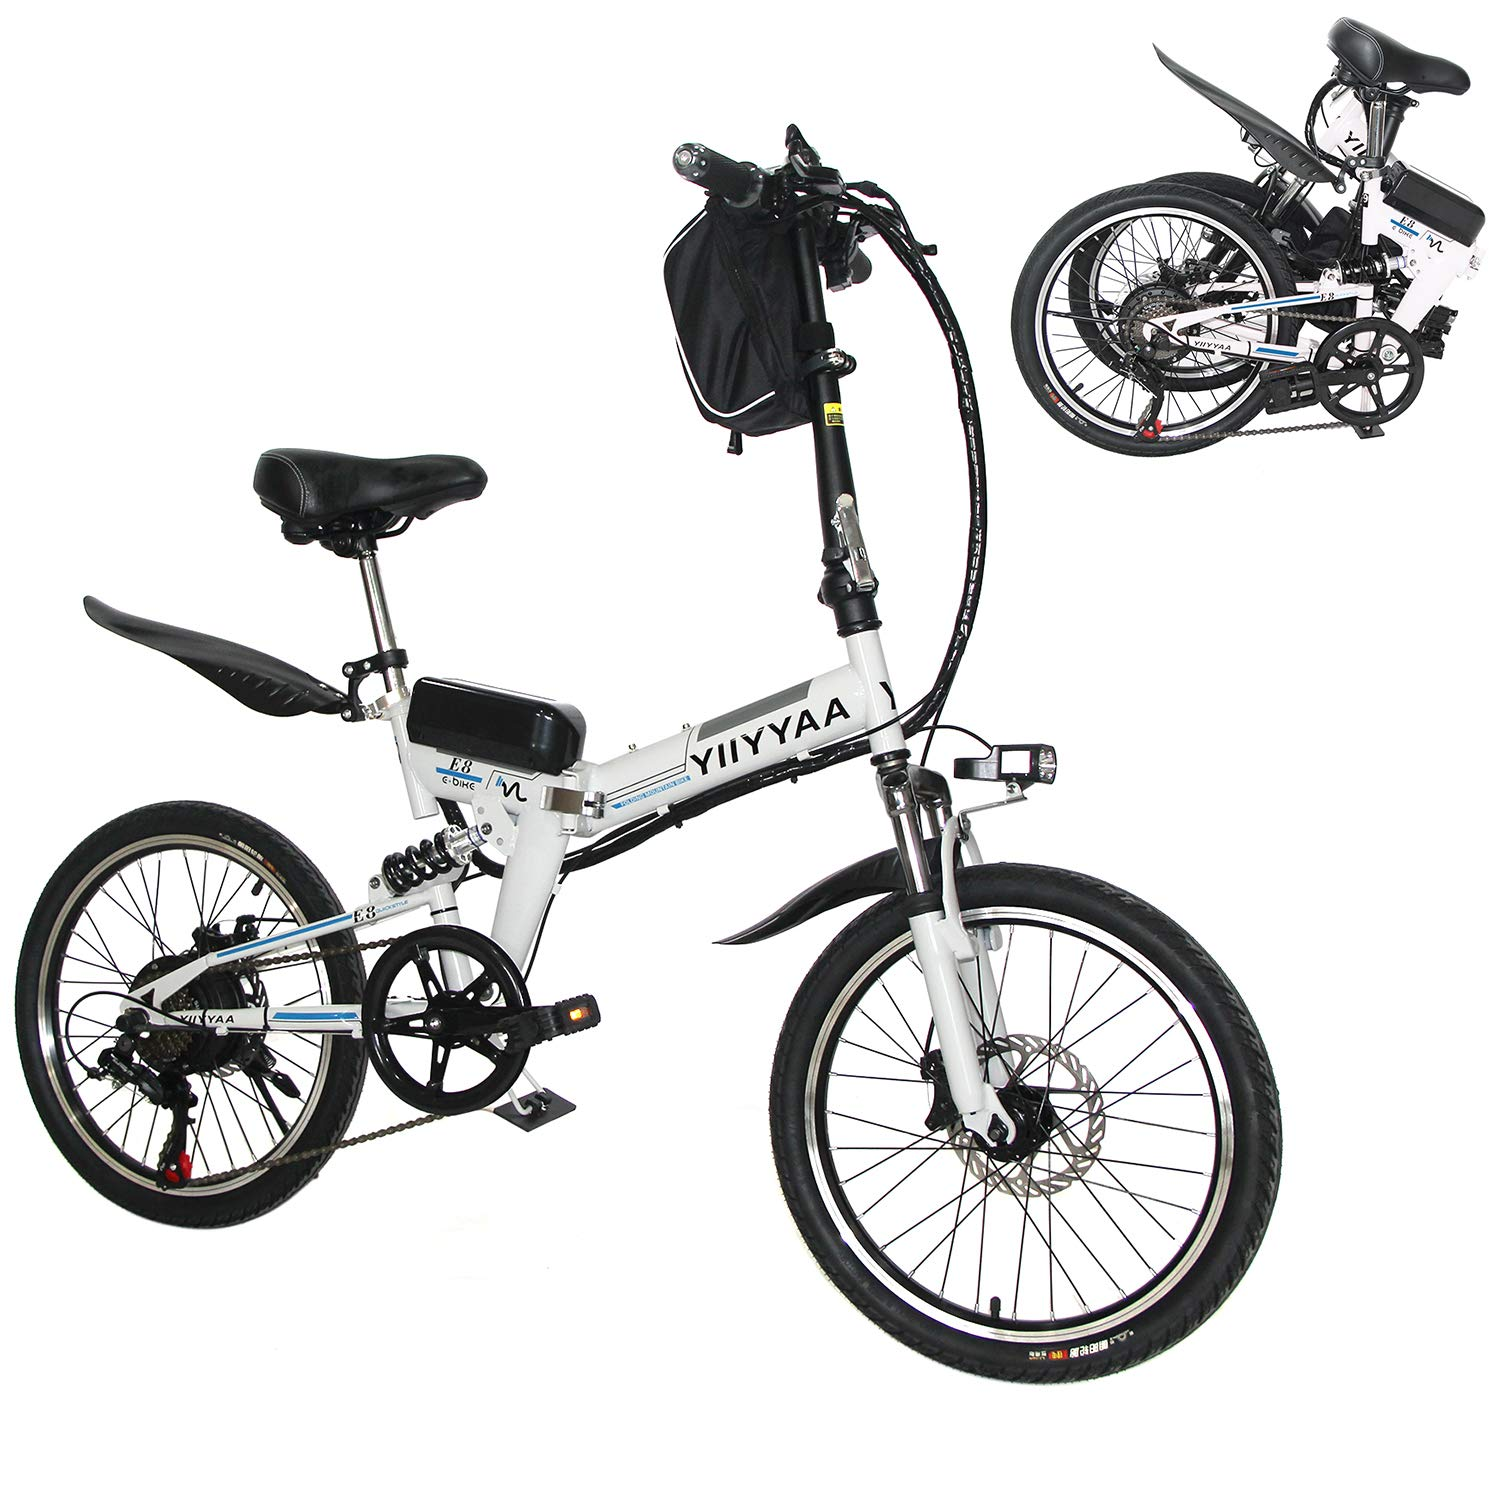 Electric Commuter Bike >> Yiiyyaa Folding Electric Bike 20 Inch Ebike Commuter Bicycle With 36v 350w Motor And Shimano 7 Speed Shifter